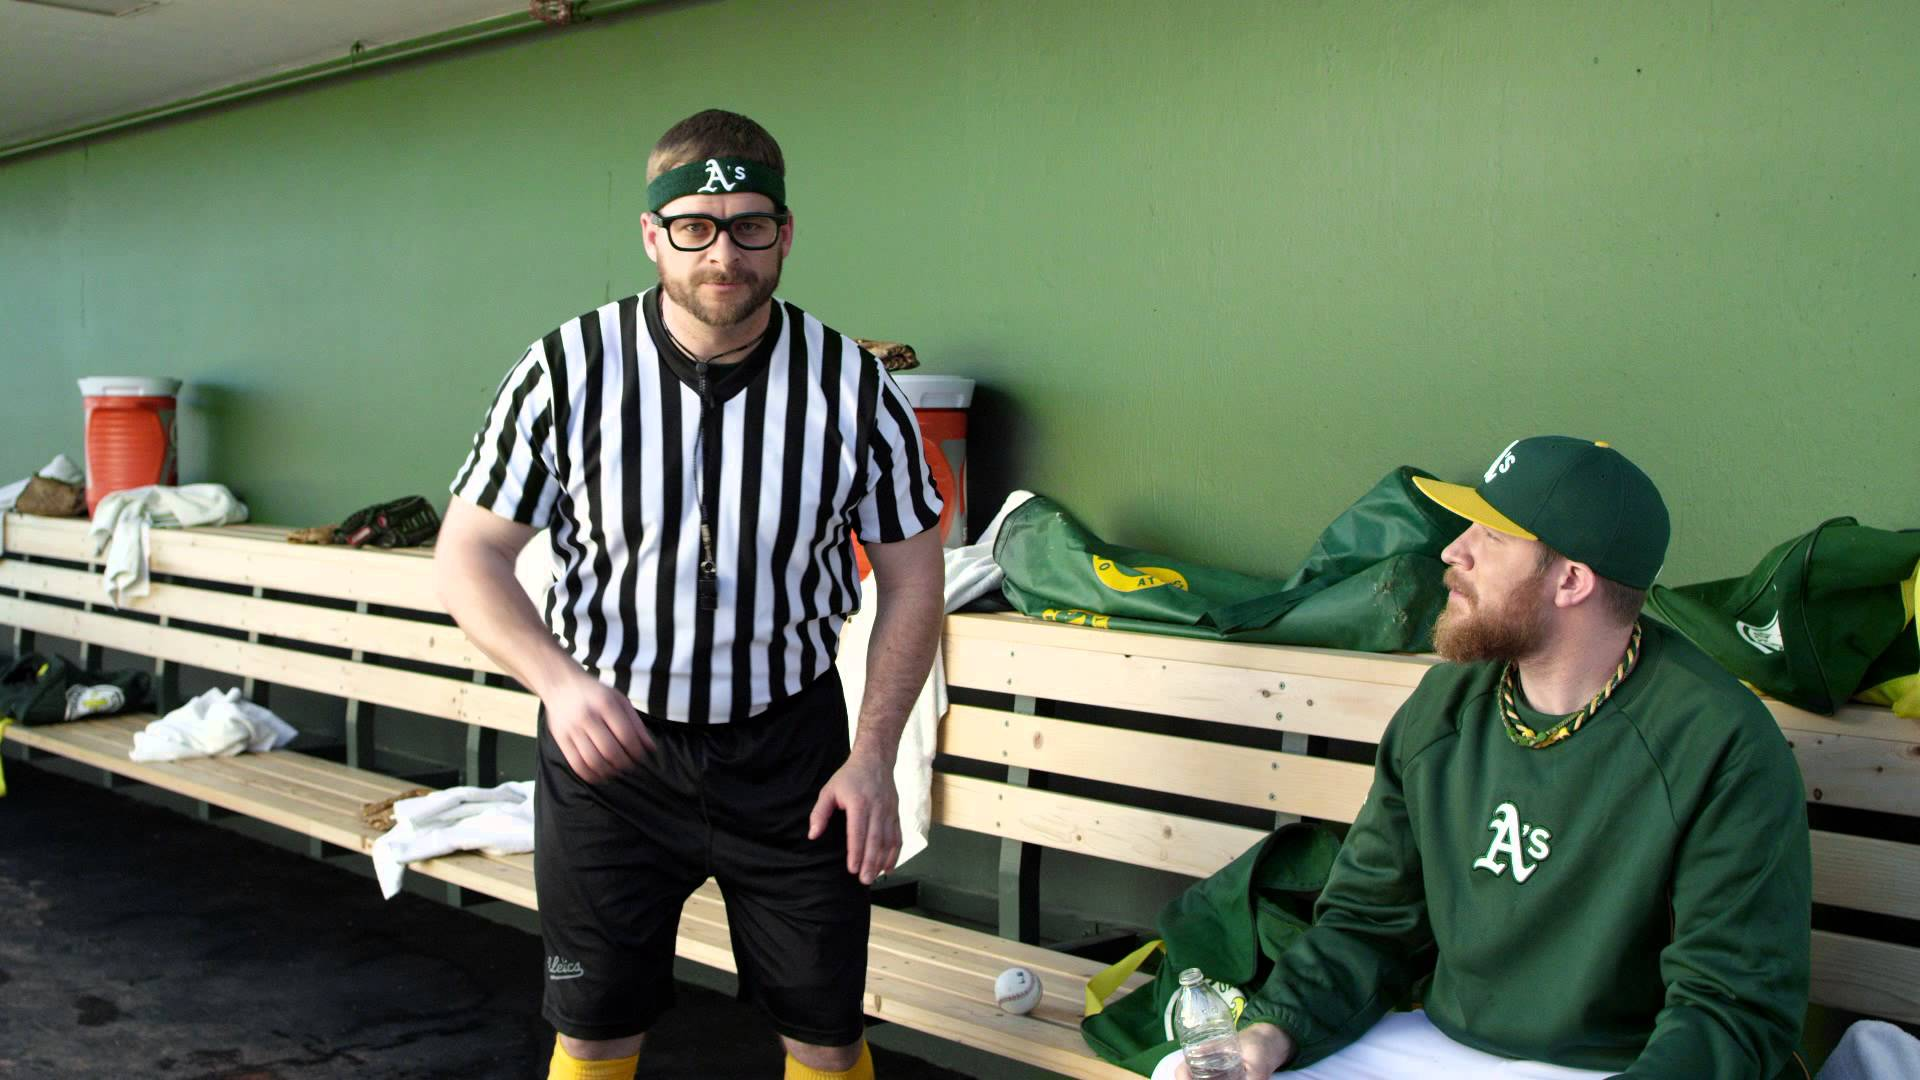 Stephen Vogt is the clubhouse NBA ref for the Oakland A's